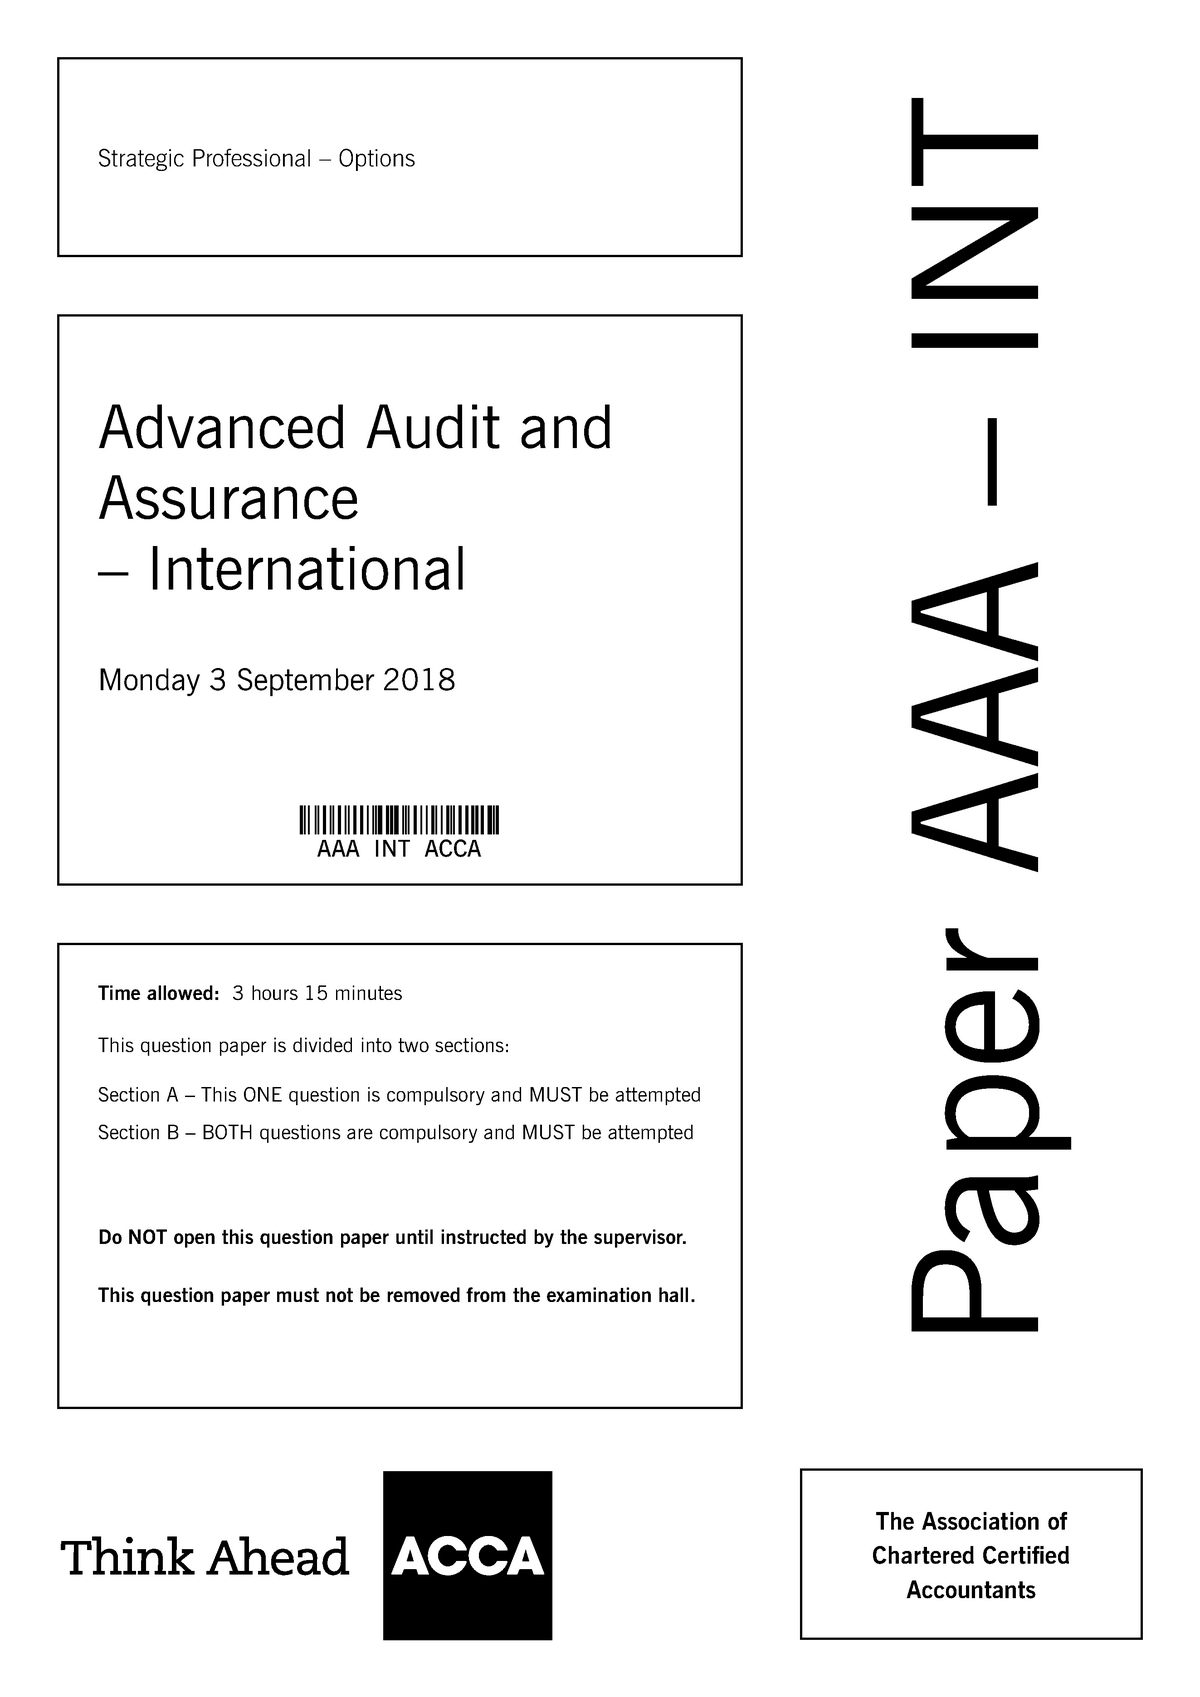 Exam 1 September 2018, questions - Financial Accounting